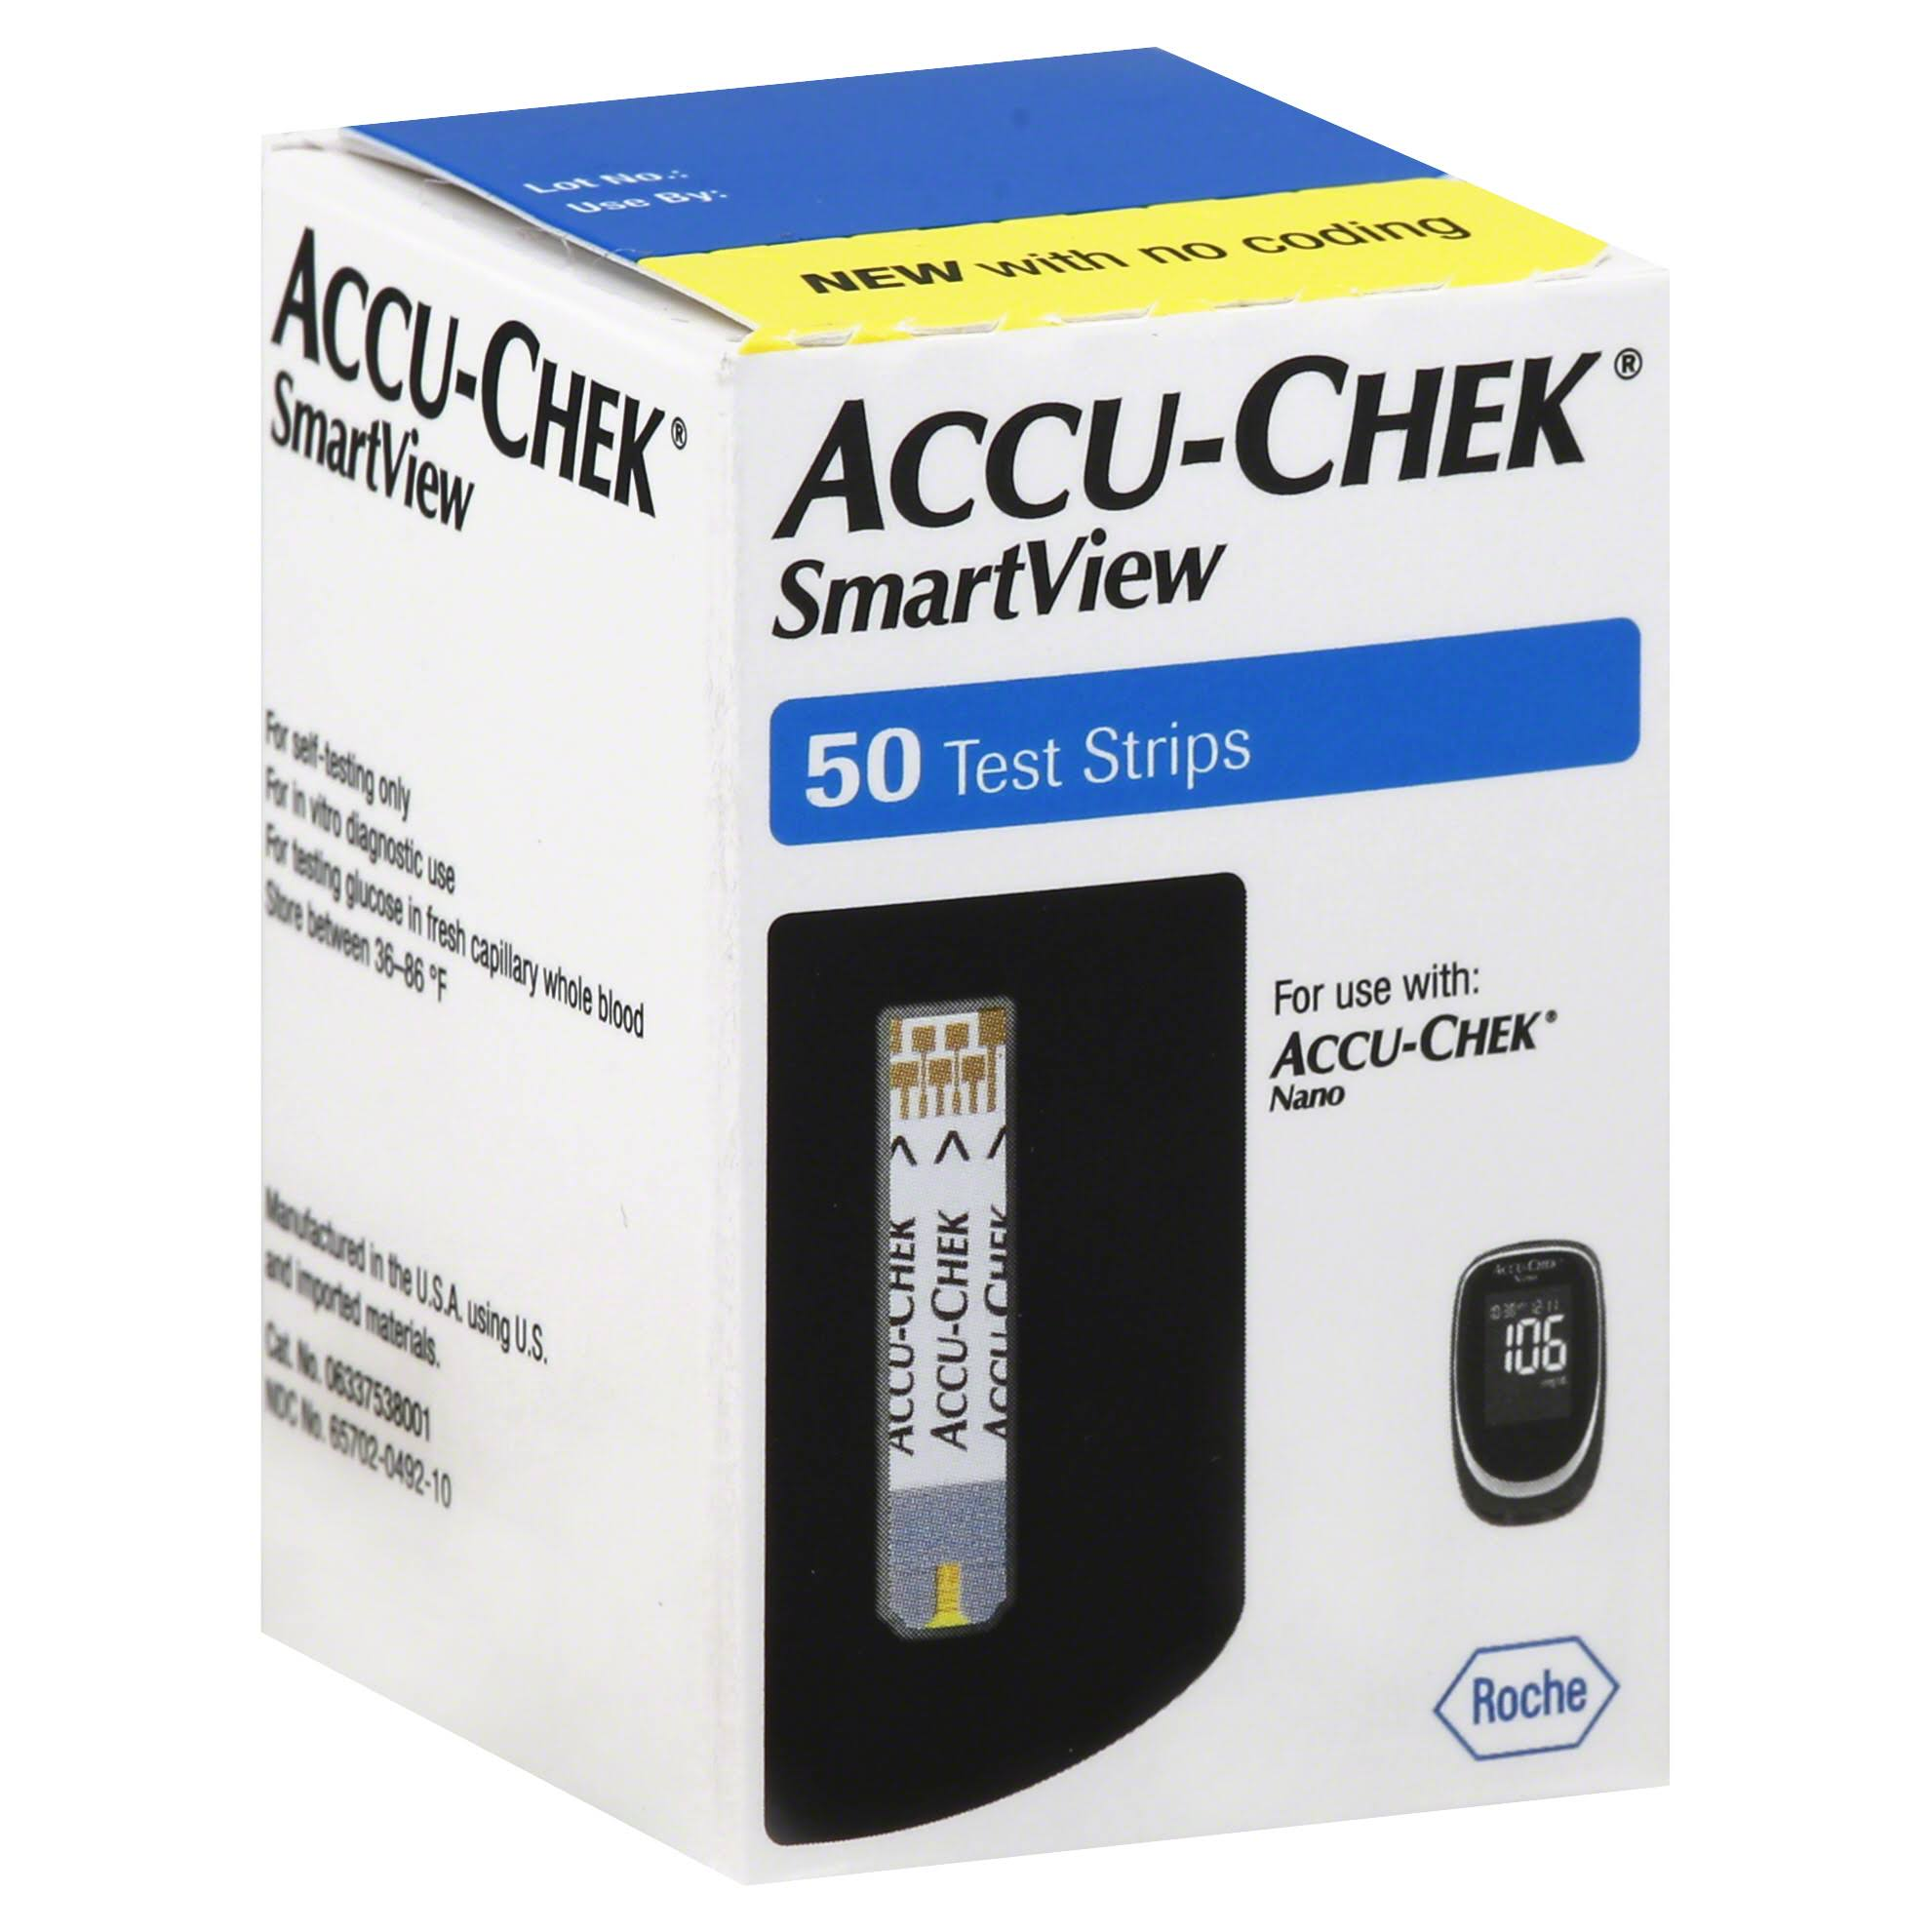 Accu-Chek SmartView Test Strips - x50